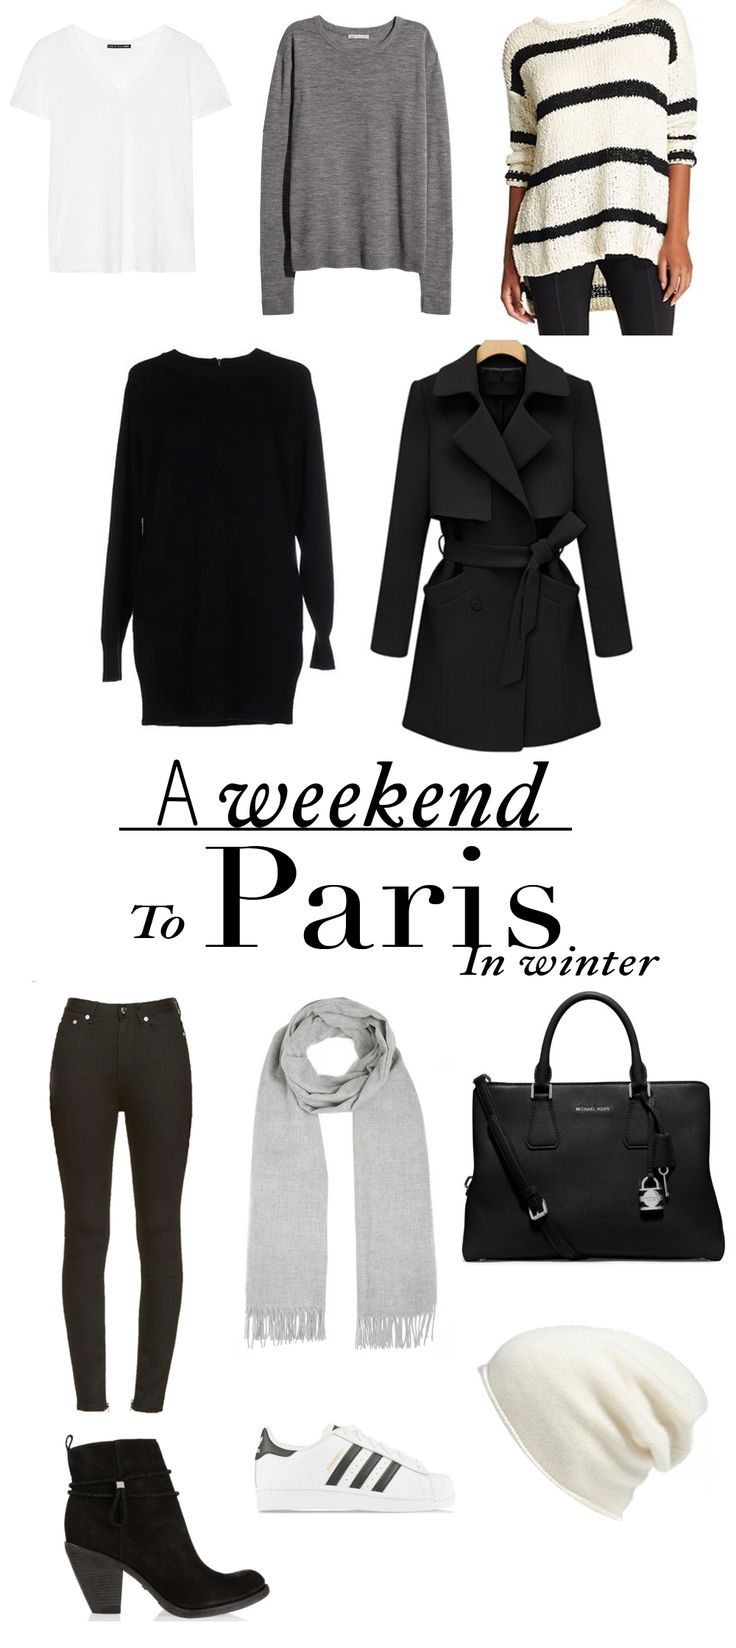 What To Pack For A Weekend In Paris – Winter Edition